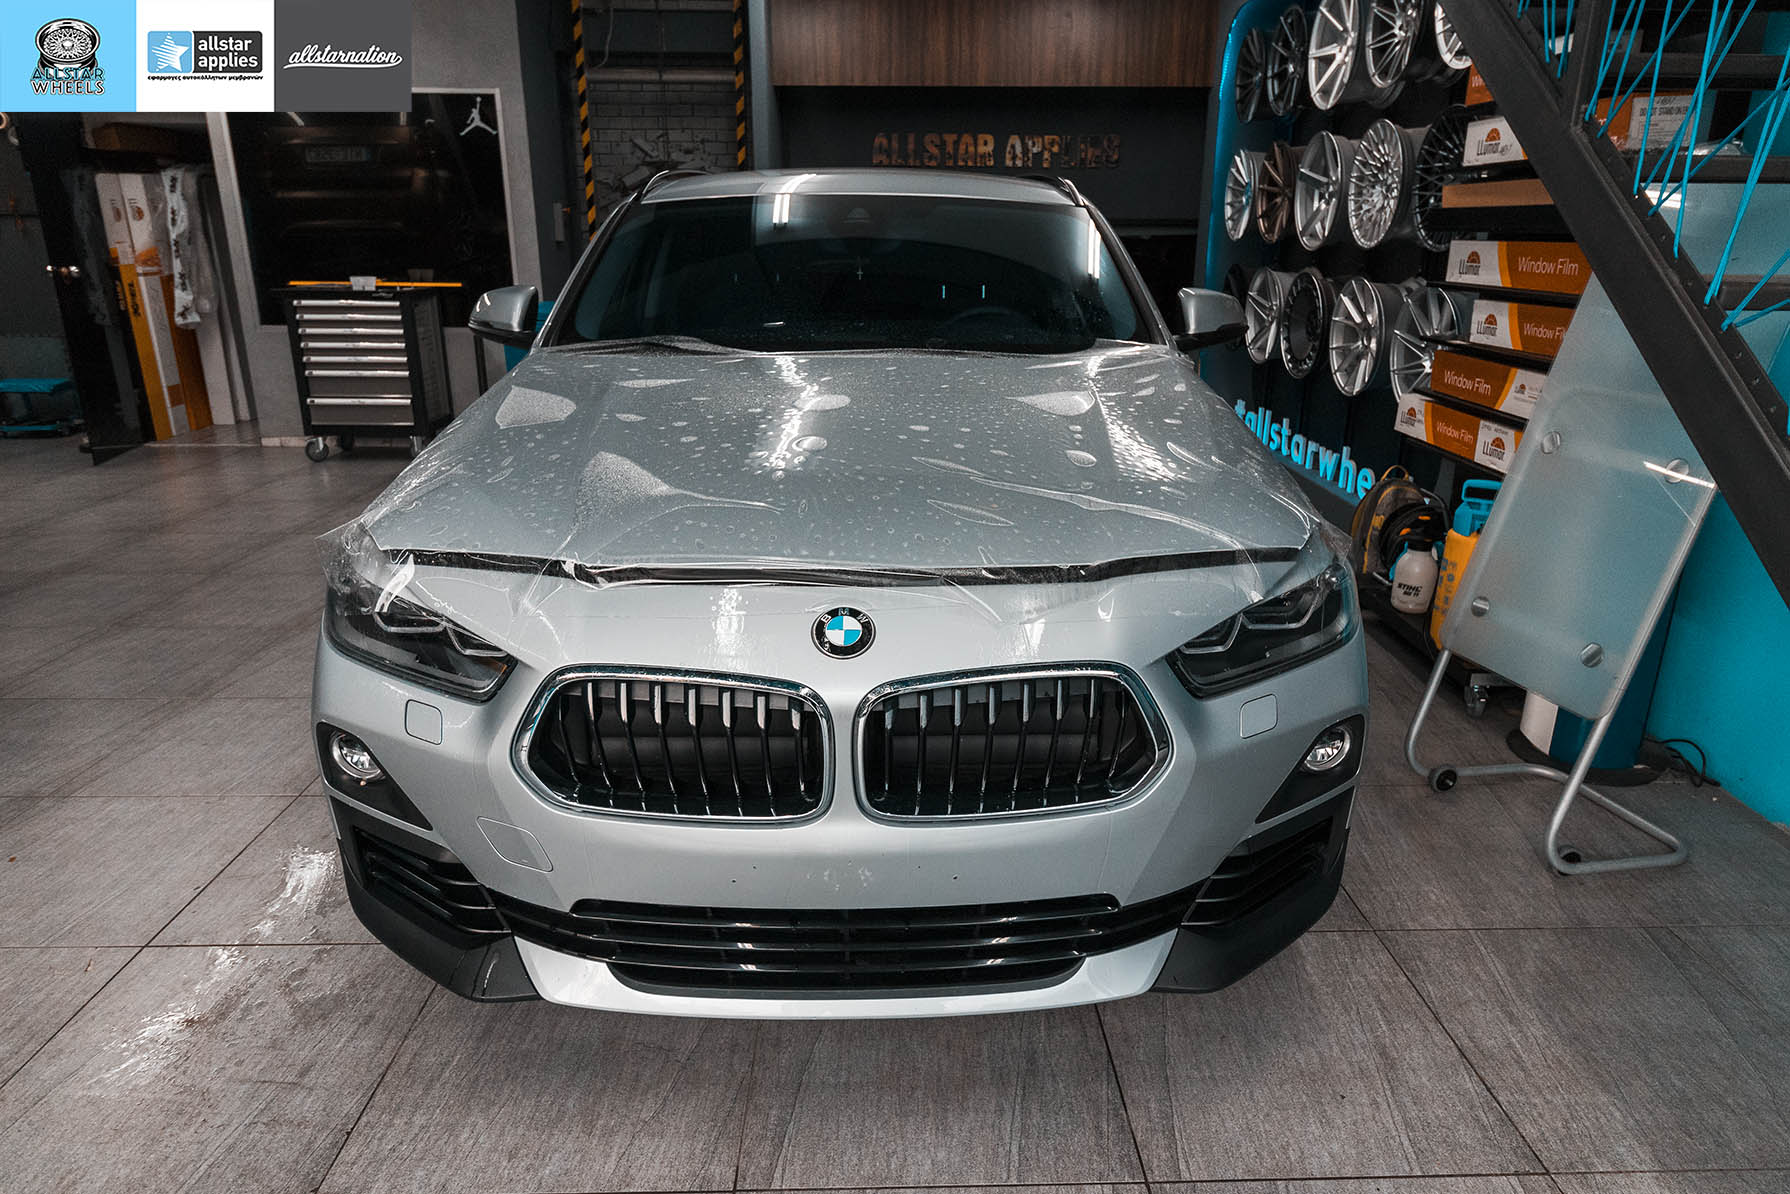 BMW X2 SDRIVE PAINT PROTECTION FILM ALLSTAR APPLIES (4)